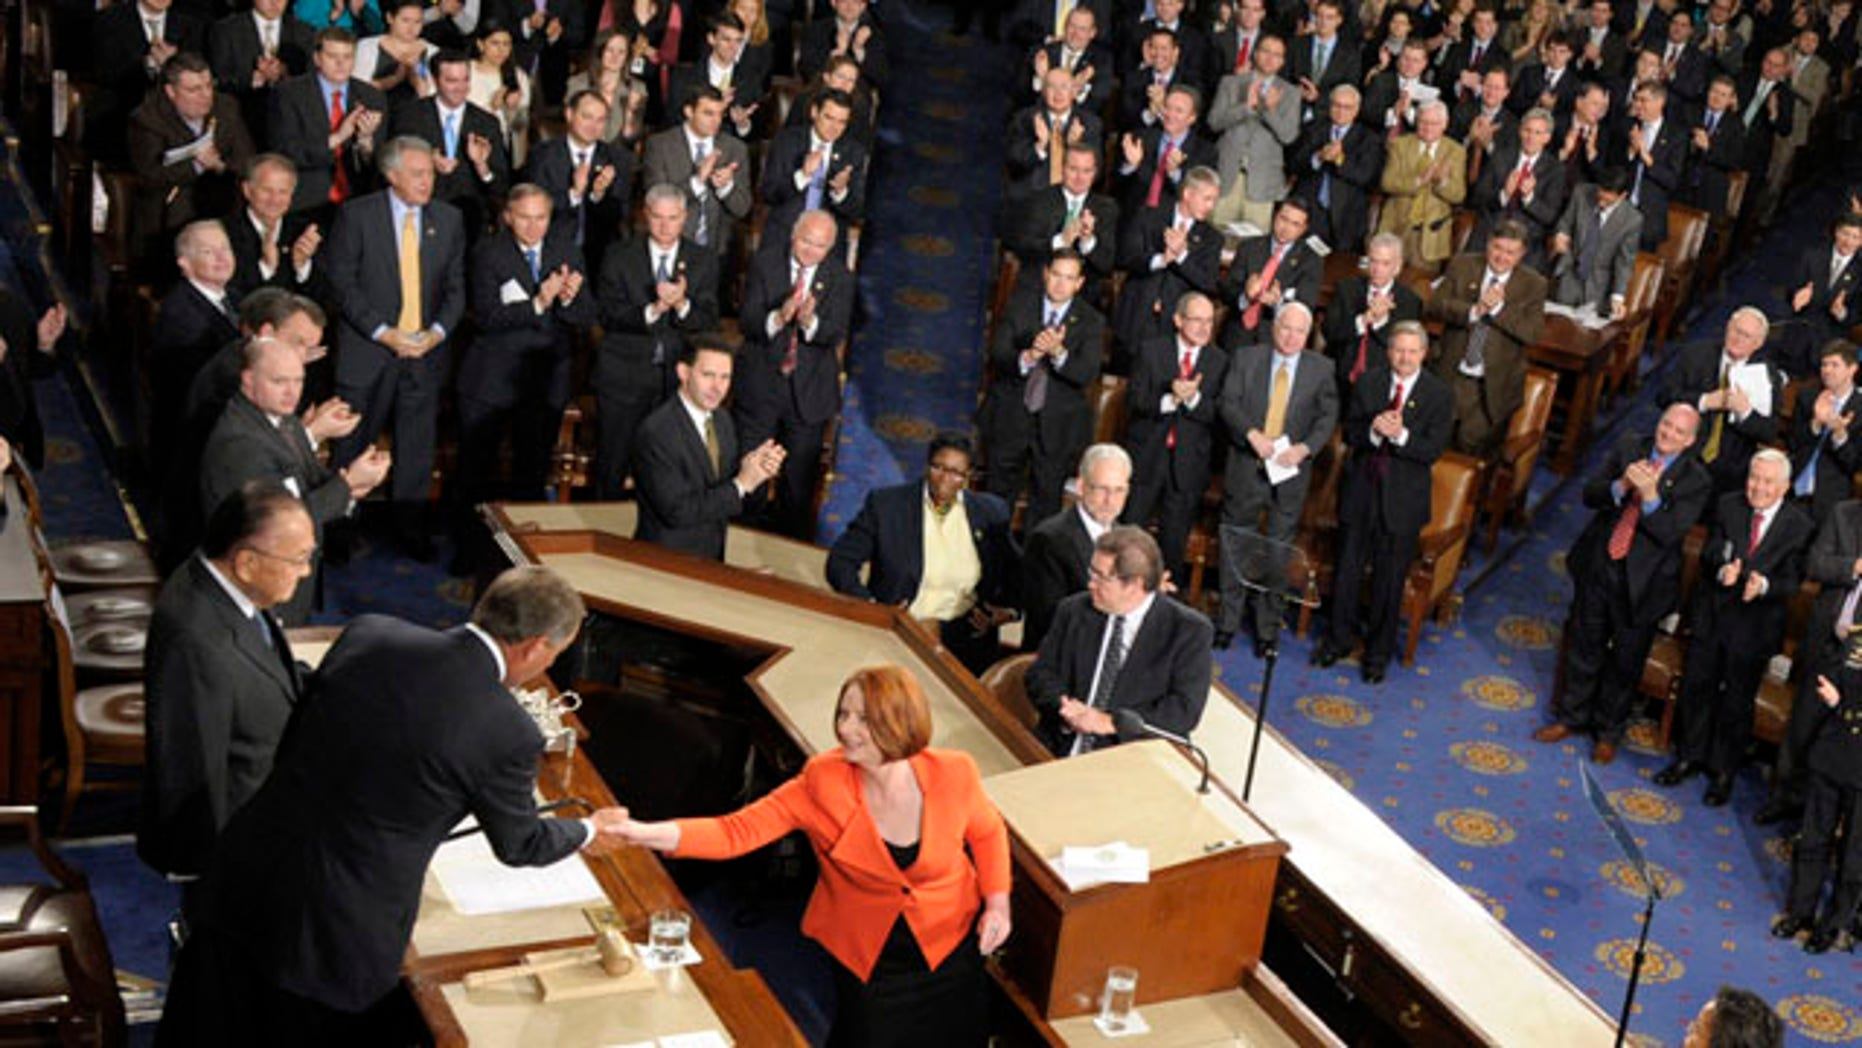 March 9: Australian Prime Minister Julia Gillard shakes hands with Speaker of the House John Boehner, R-Ohio, second from left, after addressing a joint meeting of Congress on Capitol Hill in Washington, D.C.